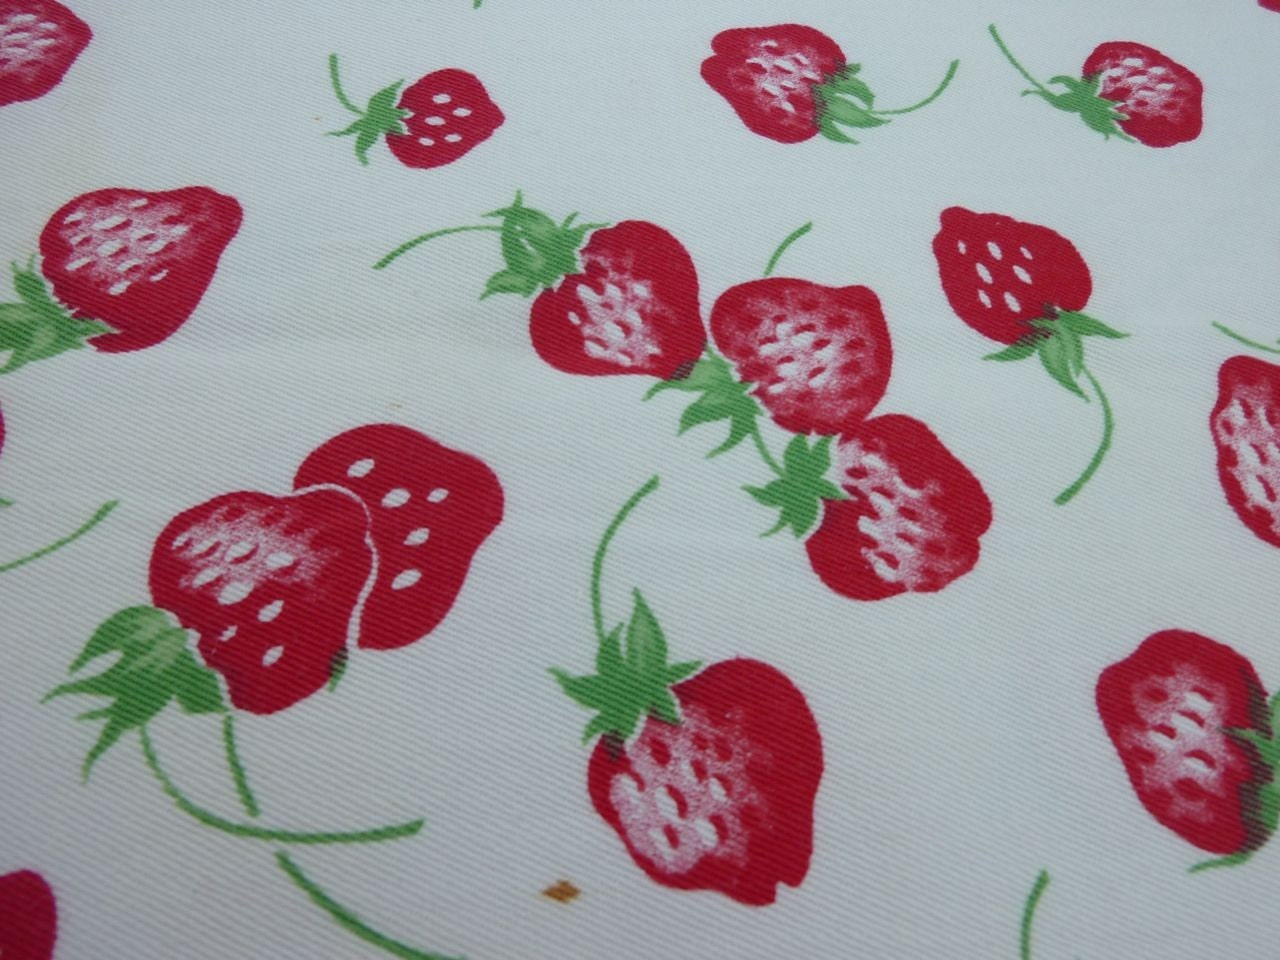 Vintage Strawberry Print Fabric for Kitchen Towels by ...